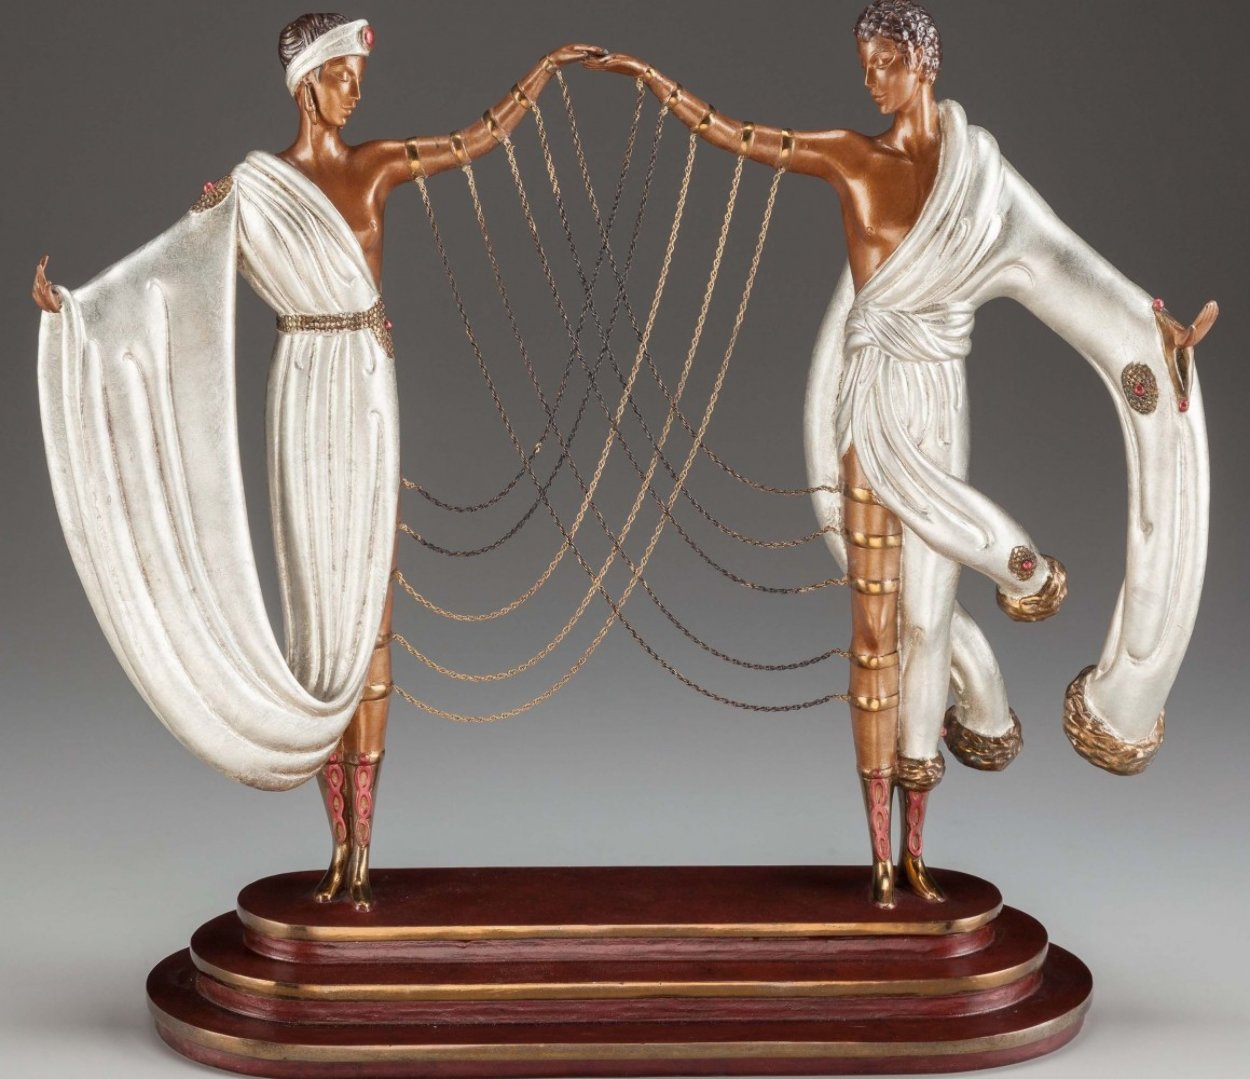 Wedding Bronze Sculpture 1986 17 in  Sculpture by  Erte